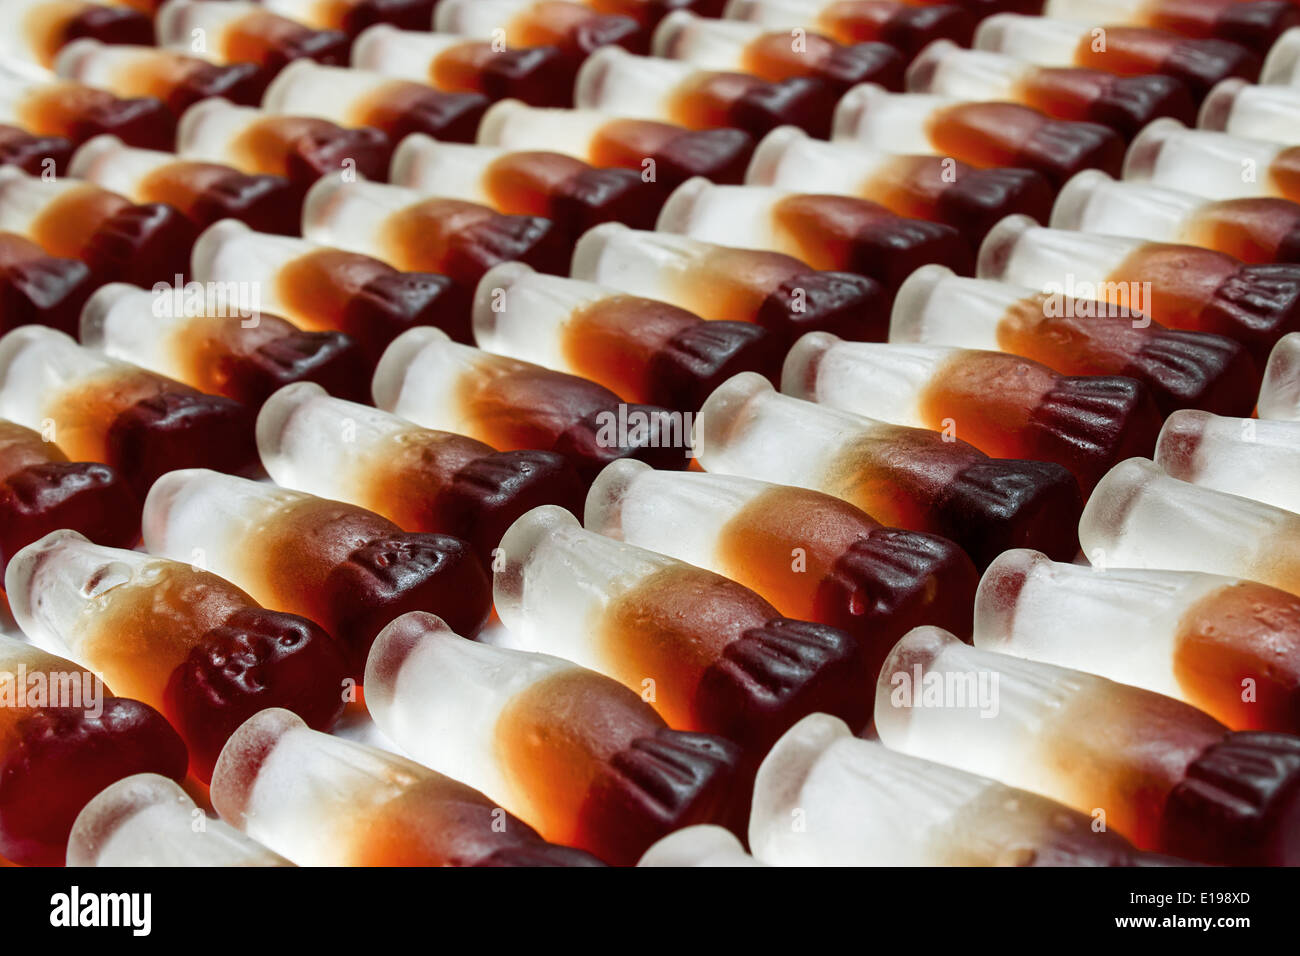 Cola bottle background arranged in rows - Stock Image